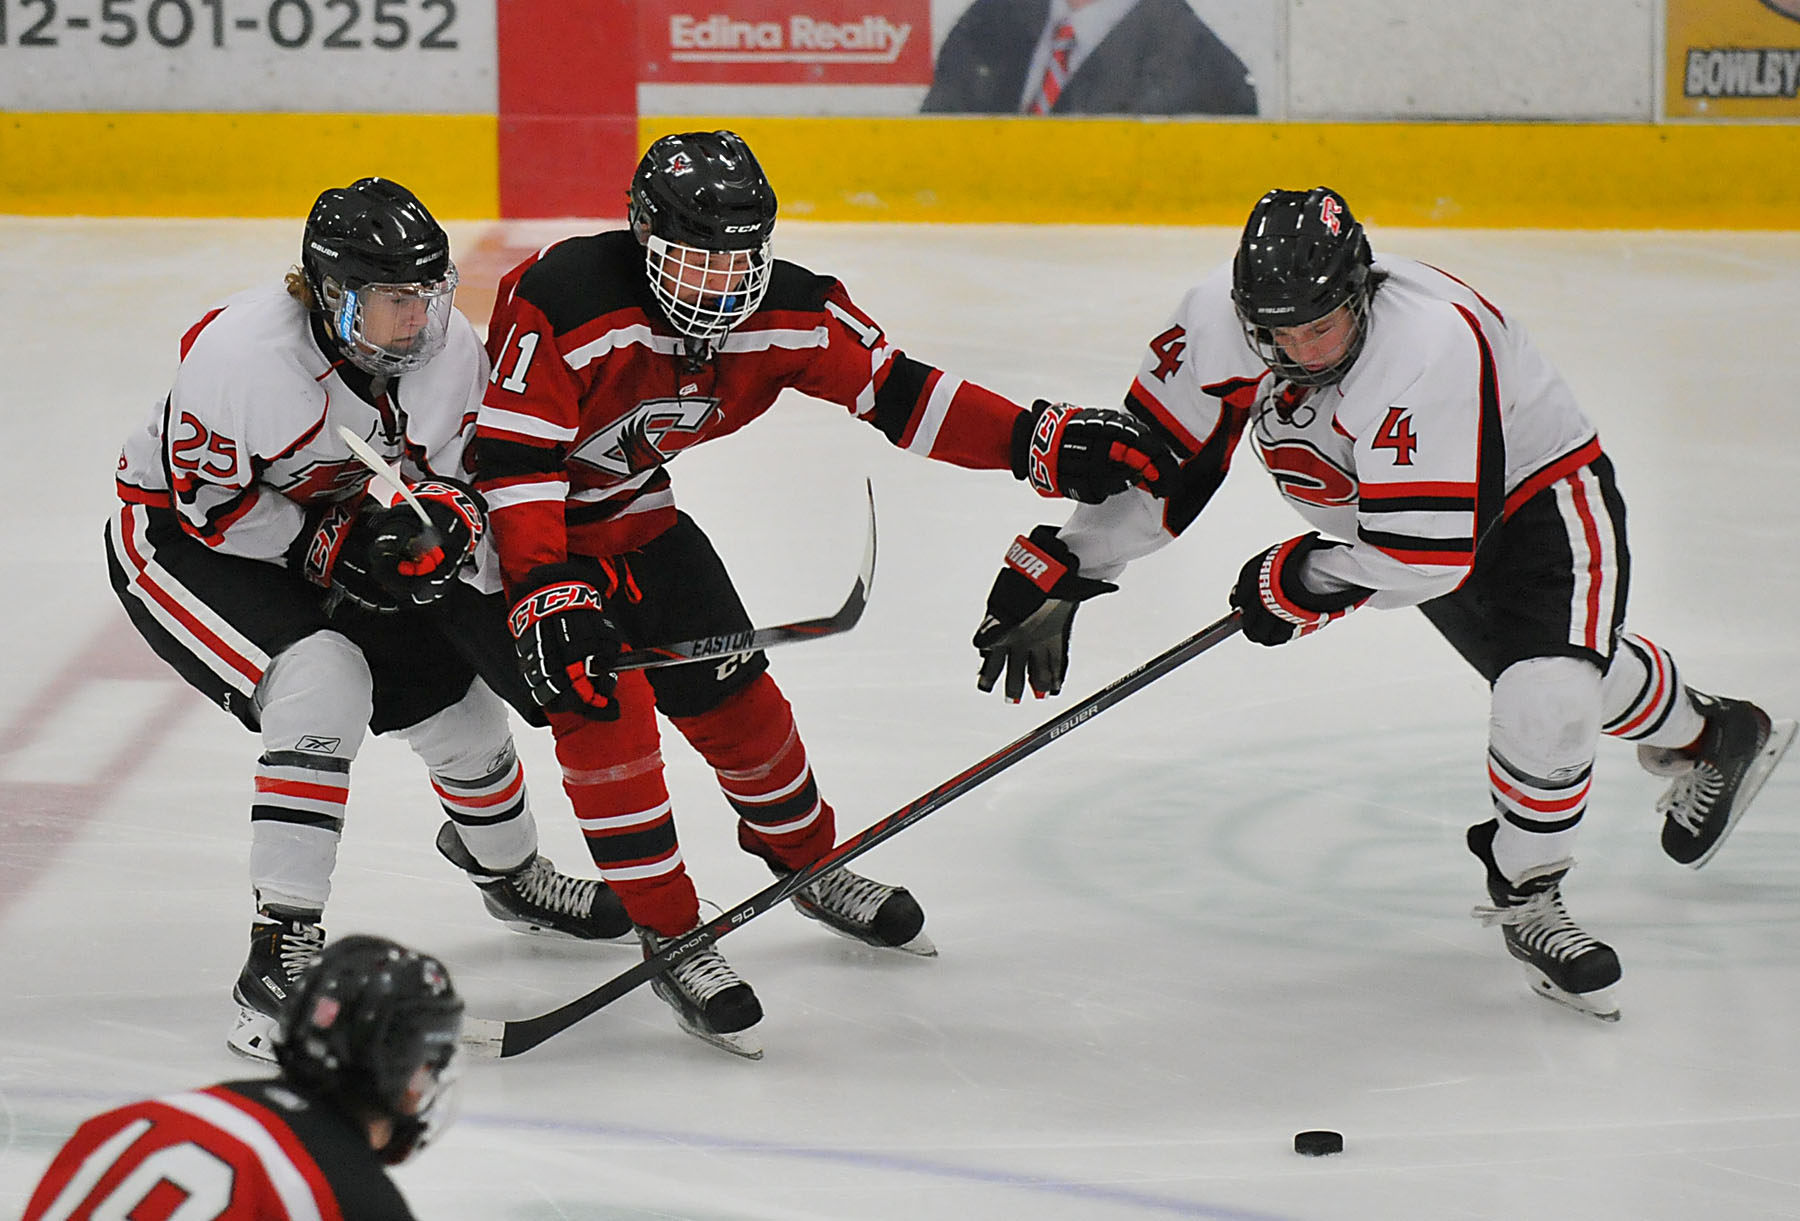 MN H.S.: Edina Holiday Classic - Ugly Goals Give Eden Prairie Victory Over Elk River